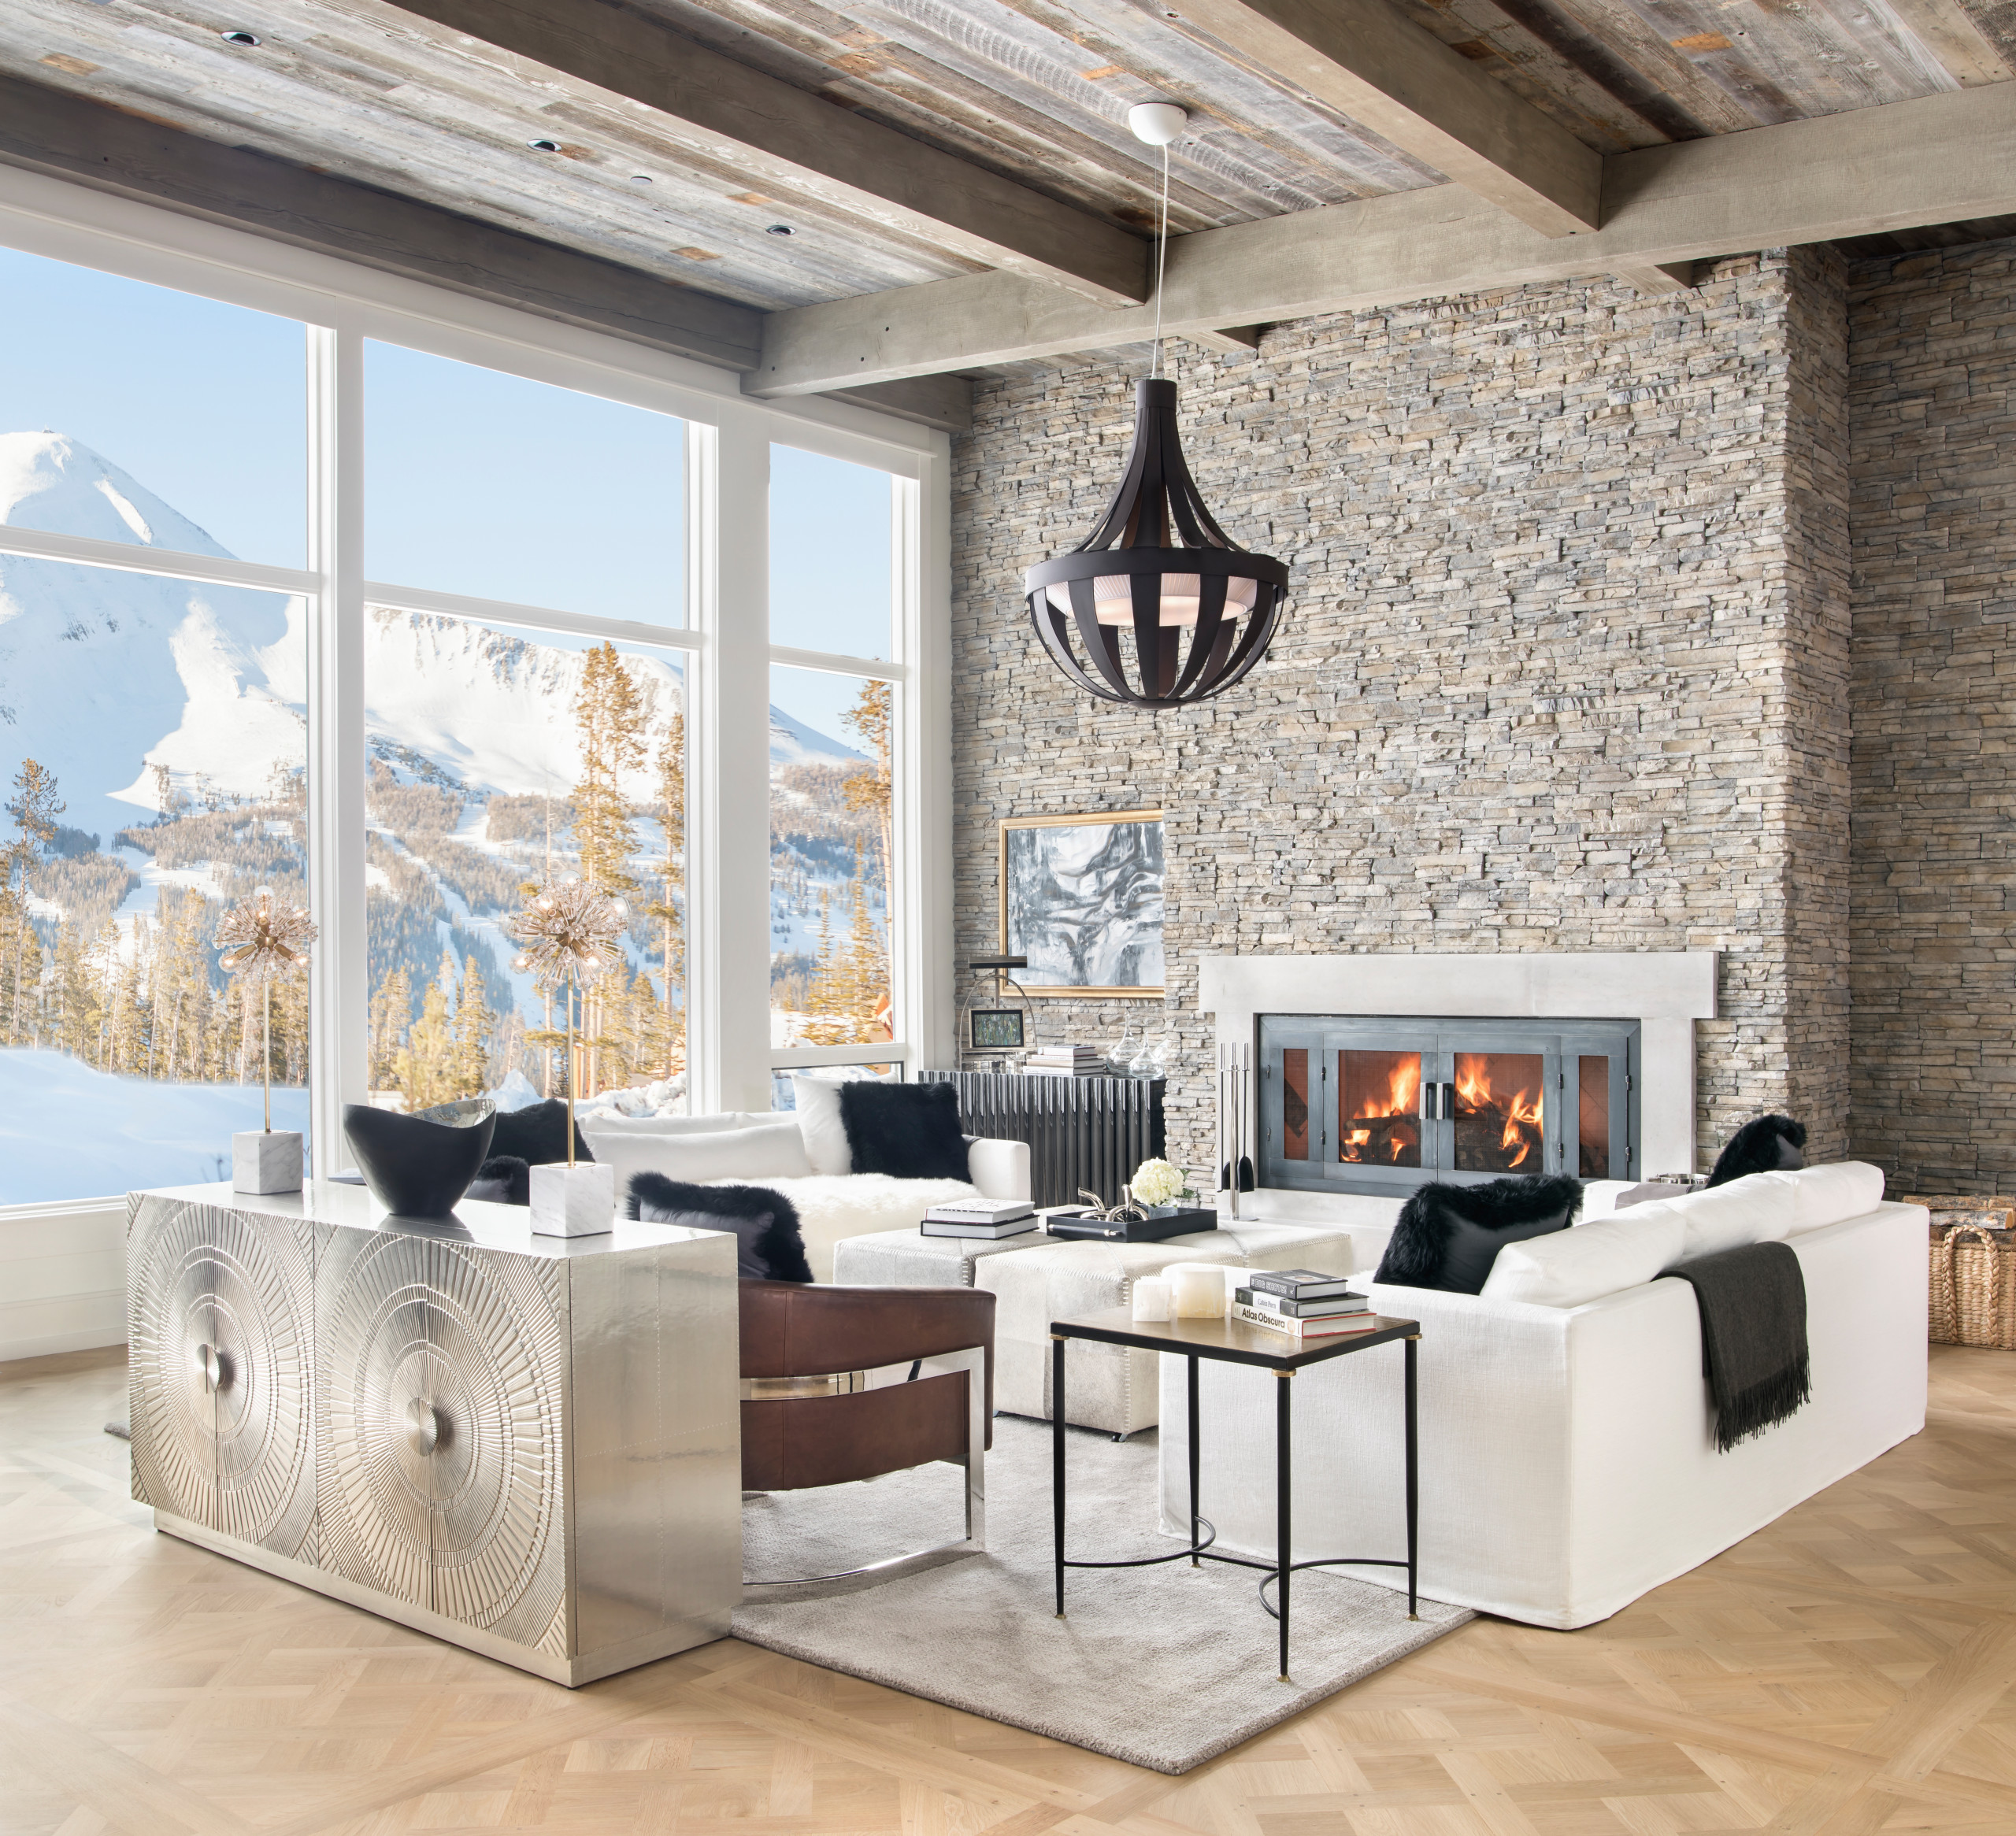 75 Beautiful Rustic Living Room Pictures Ideas January 2021 Houzz